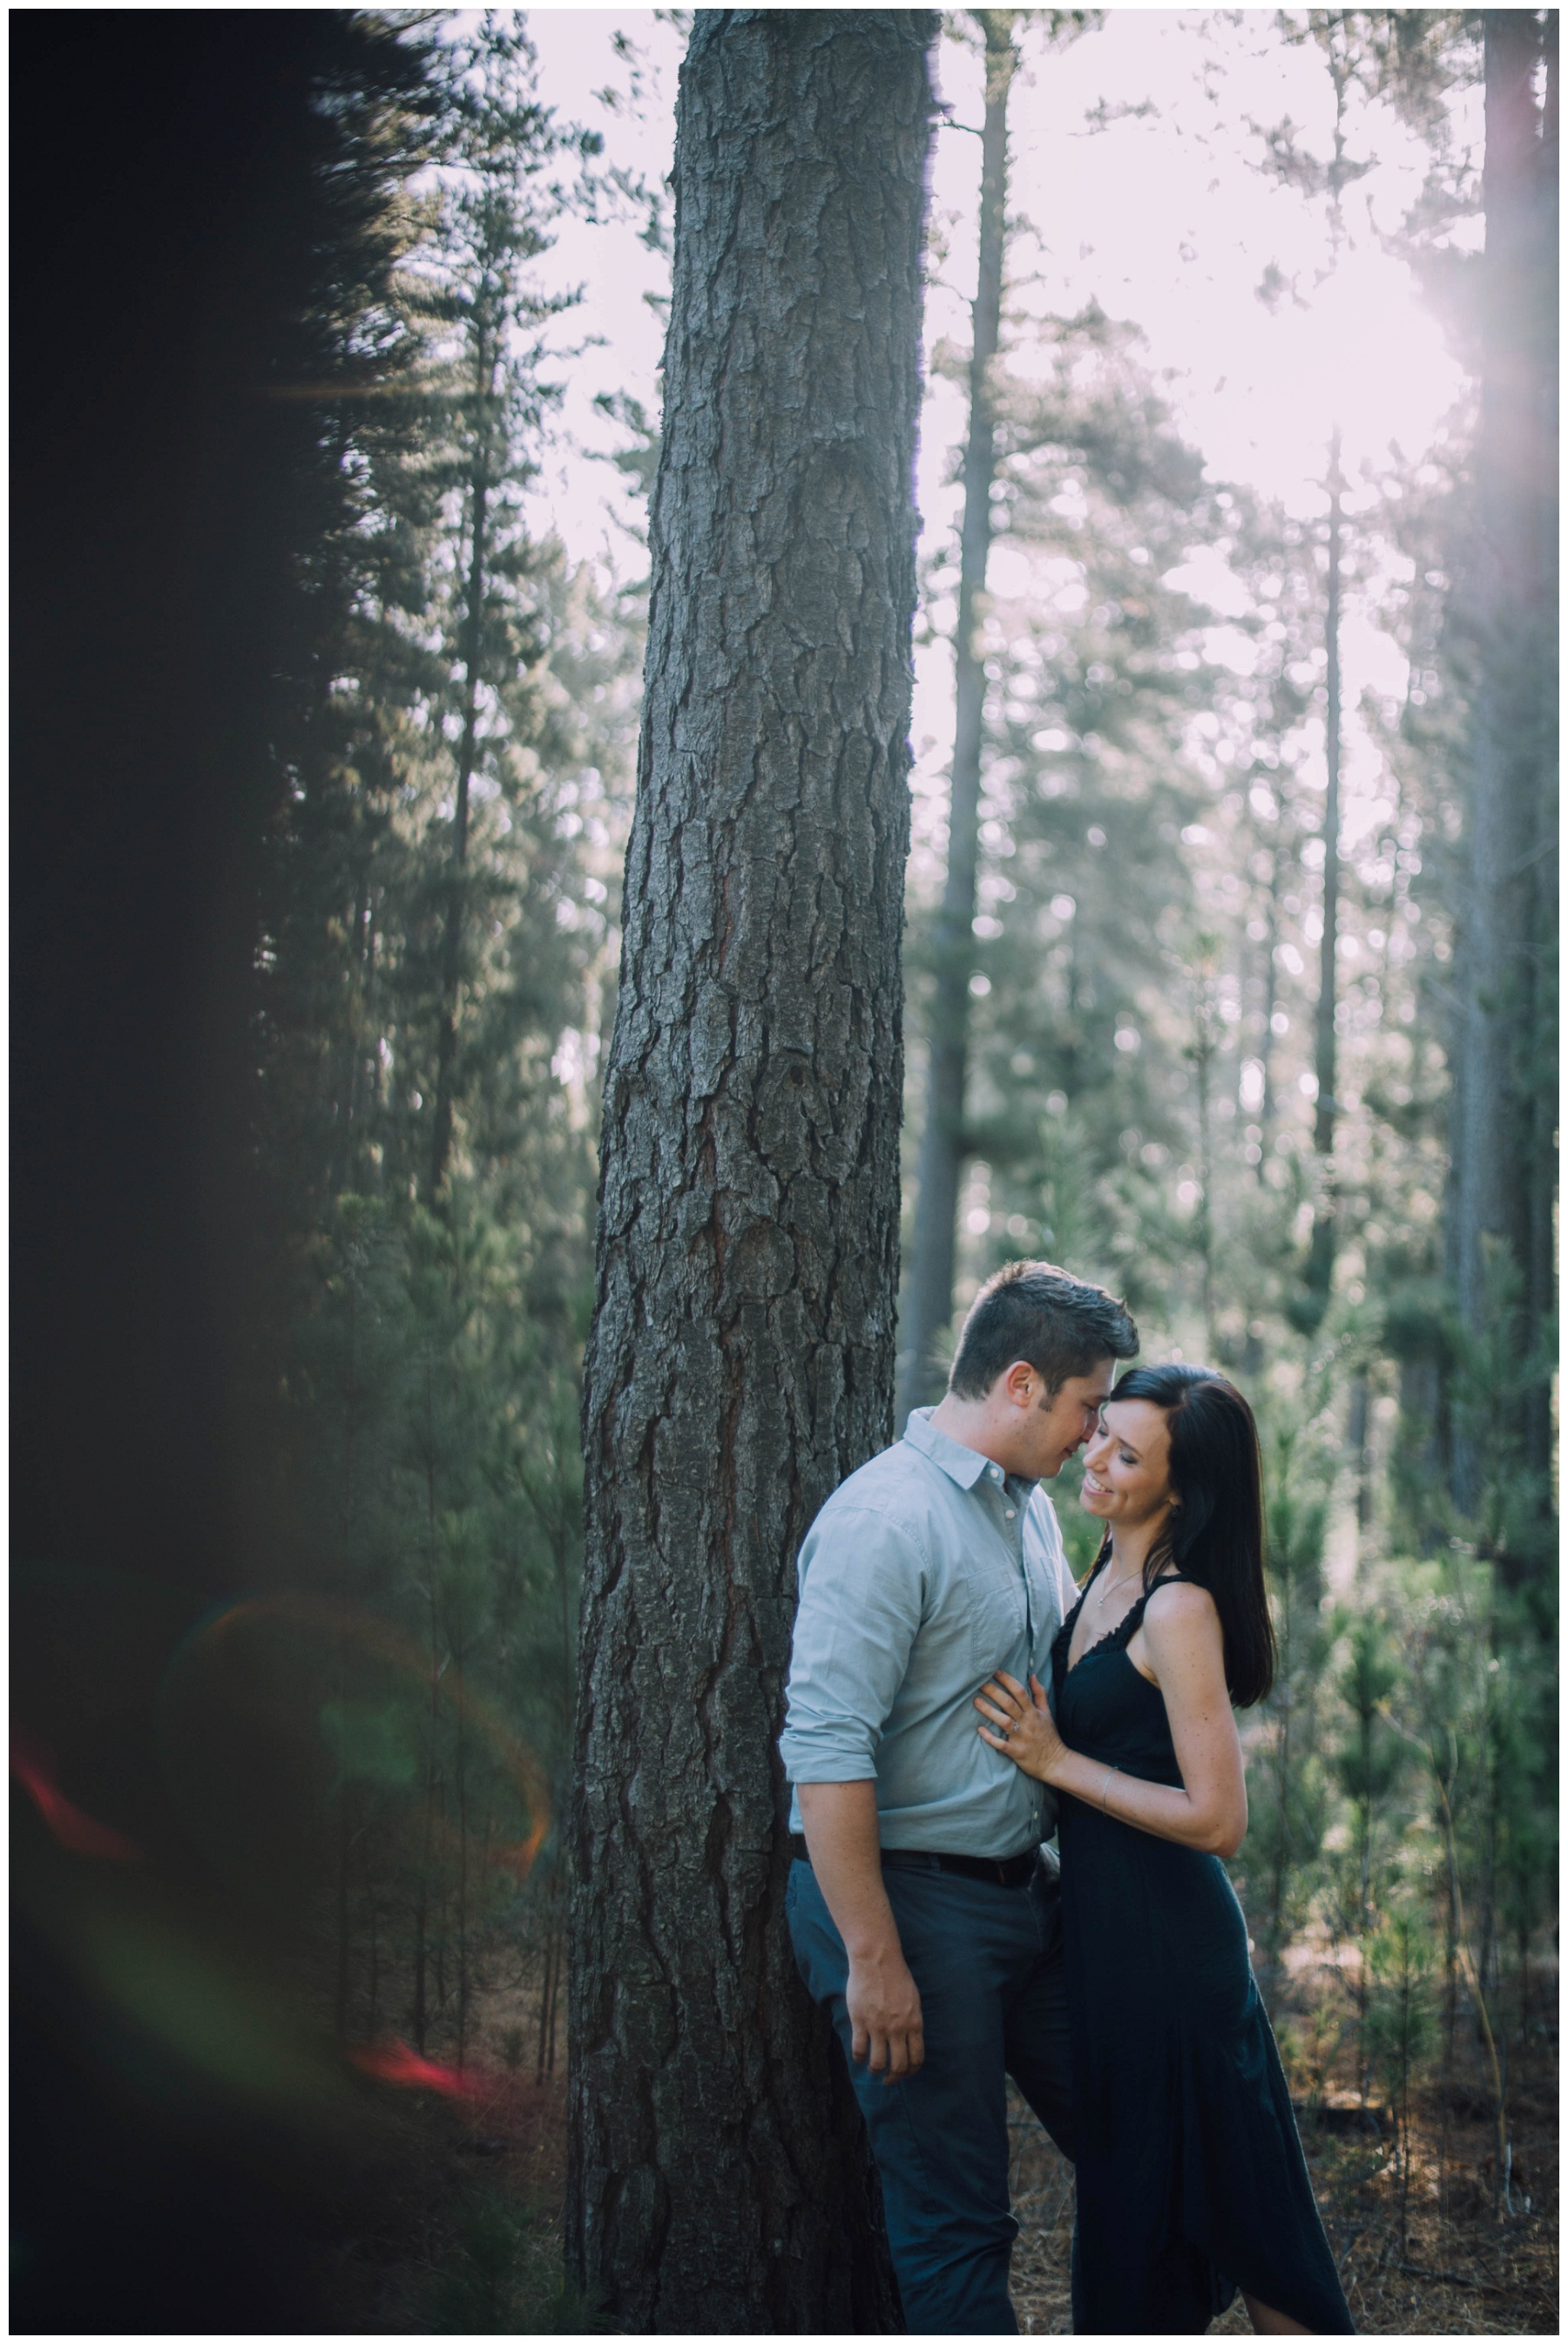 Ronel Kruger Cape Town Wedding and Lifestyle Photographer_1500.jpg